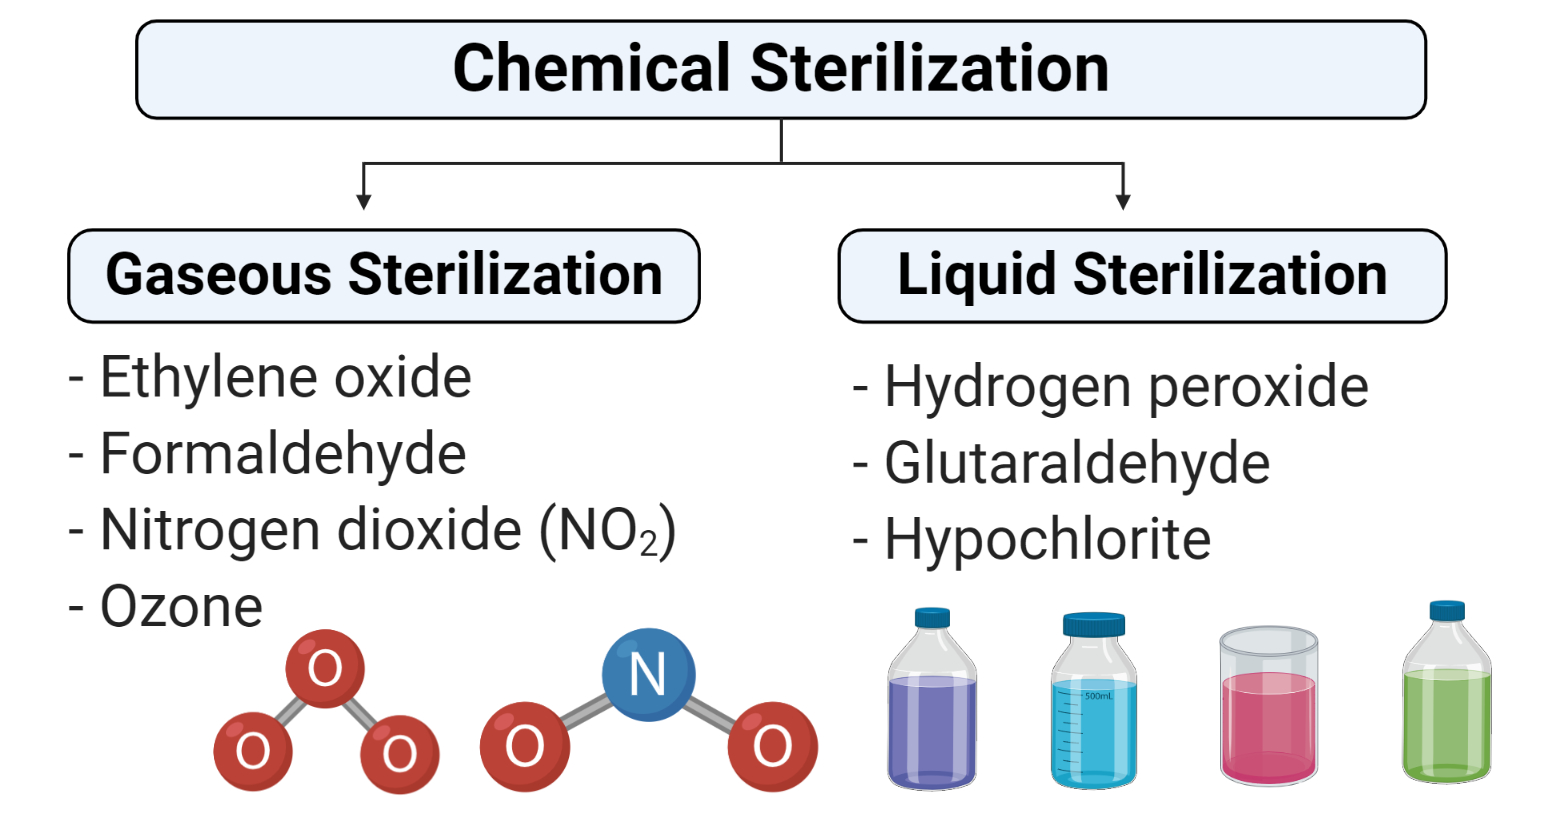 Chemical methods of sterilization